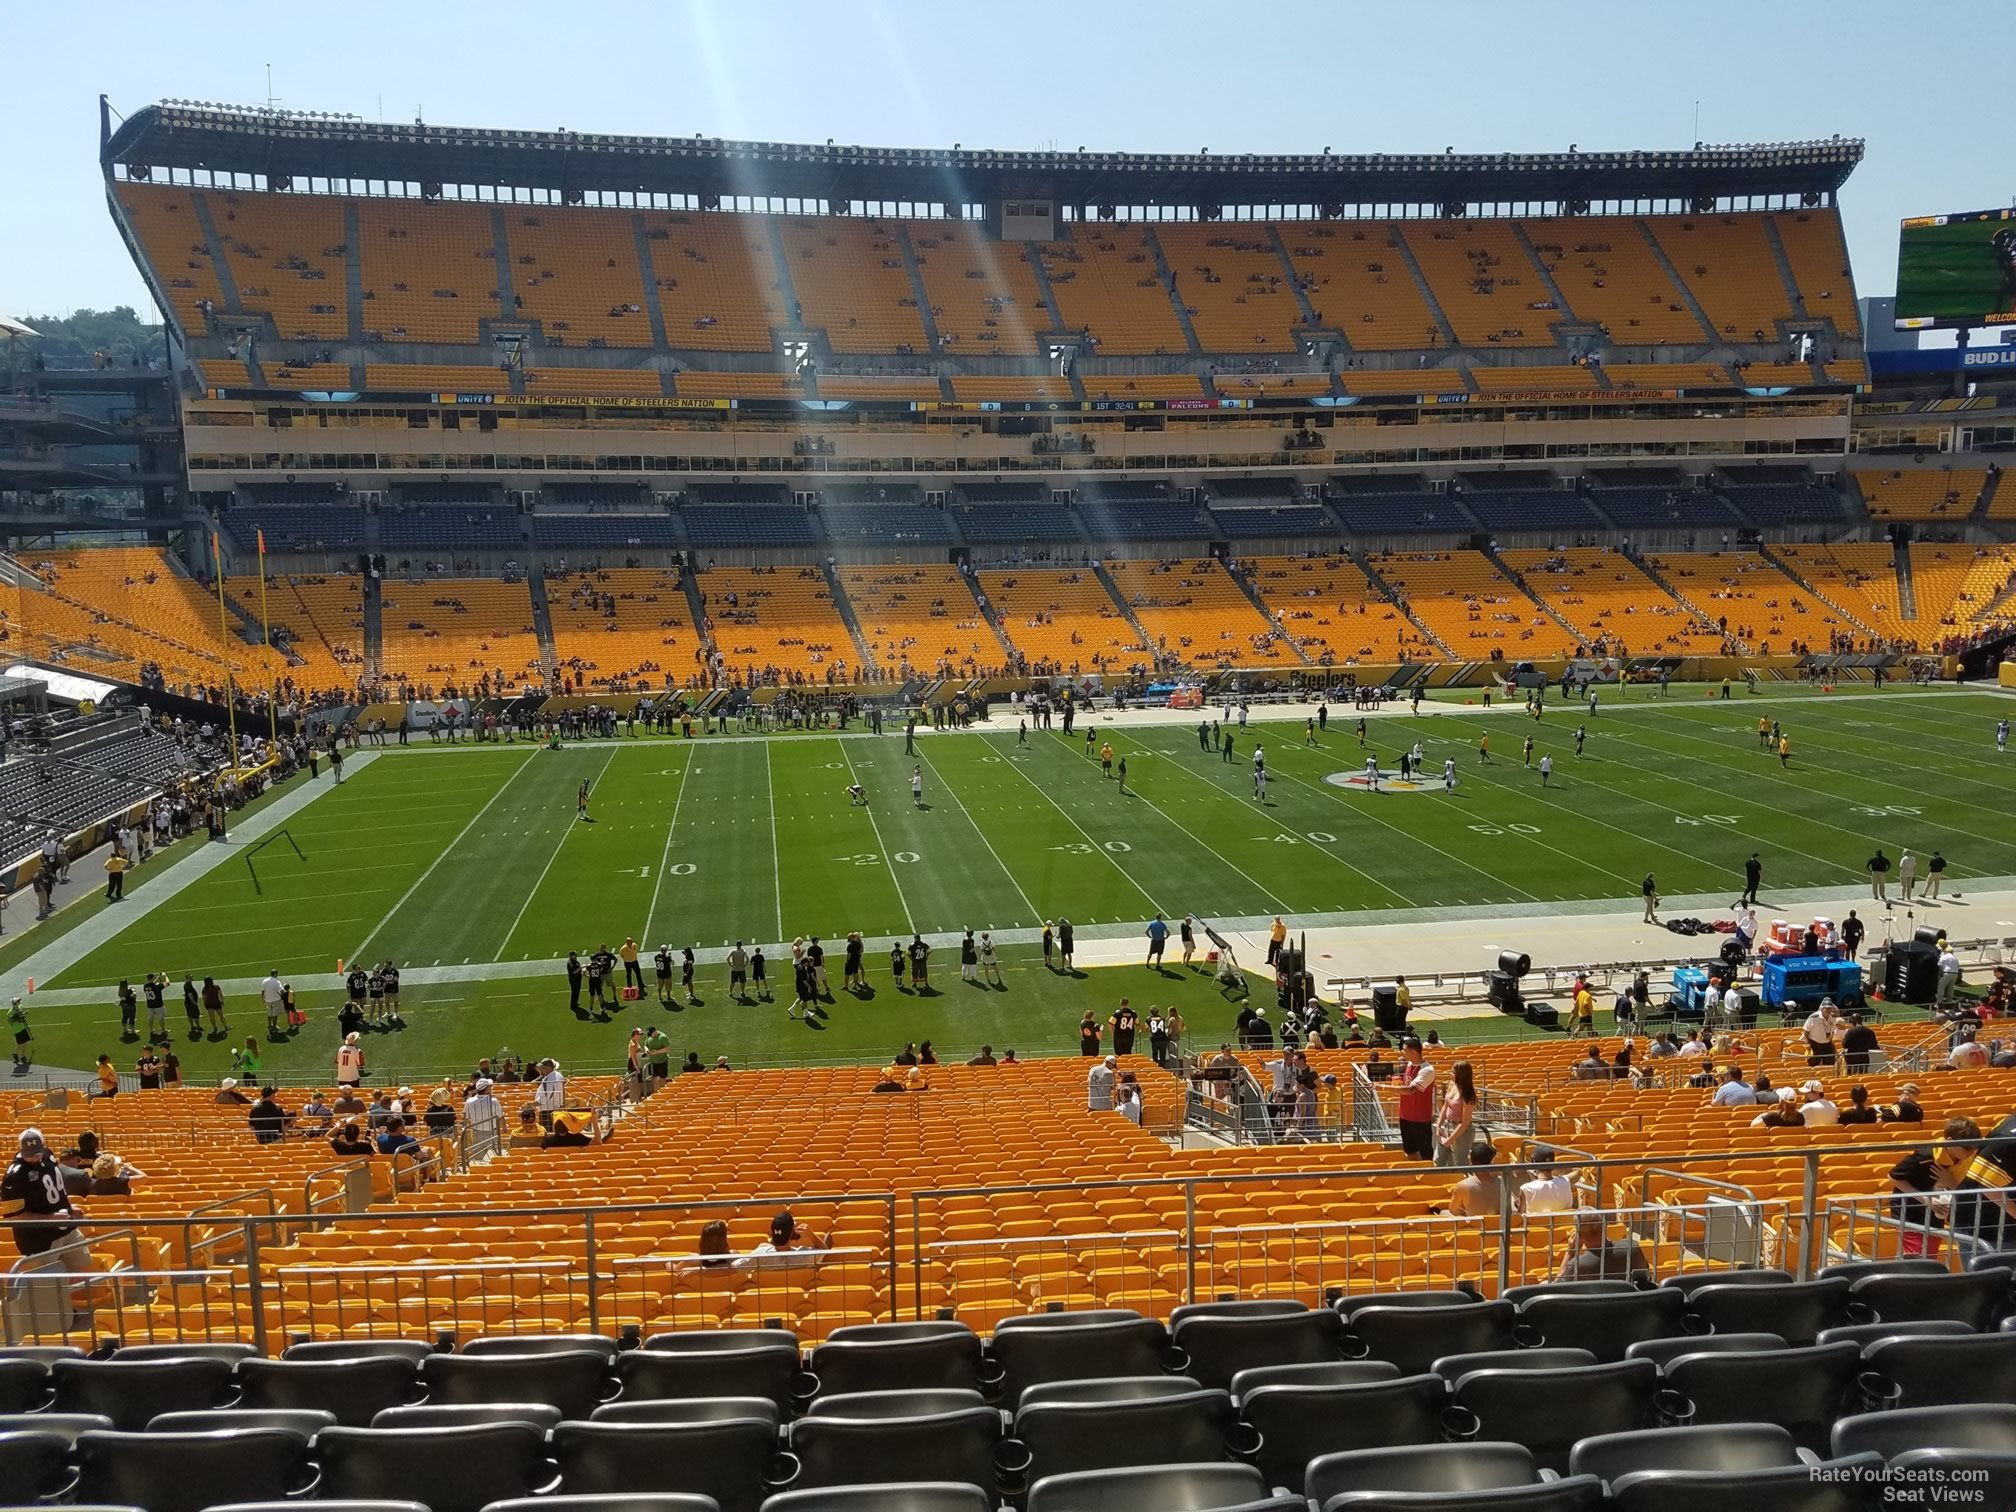 7 inspiring quot;s for International Day of Non-Violence World Pictures of heinz field pittsburgh pa